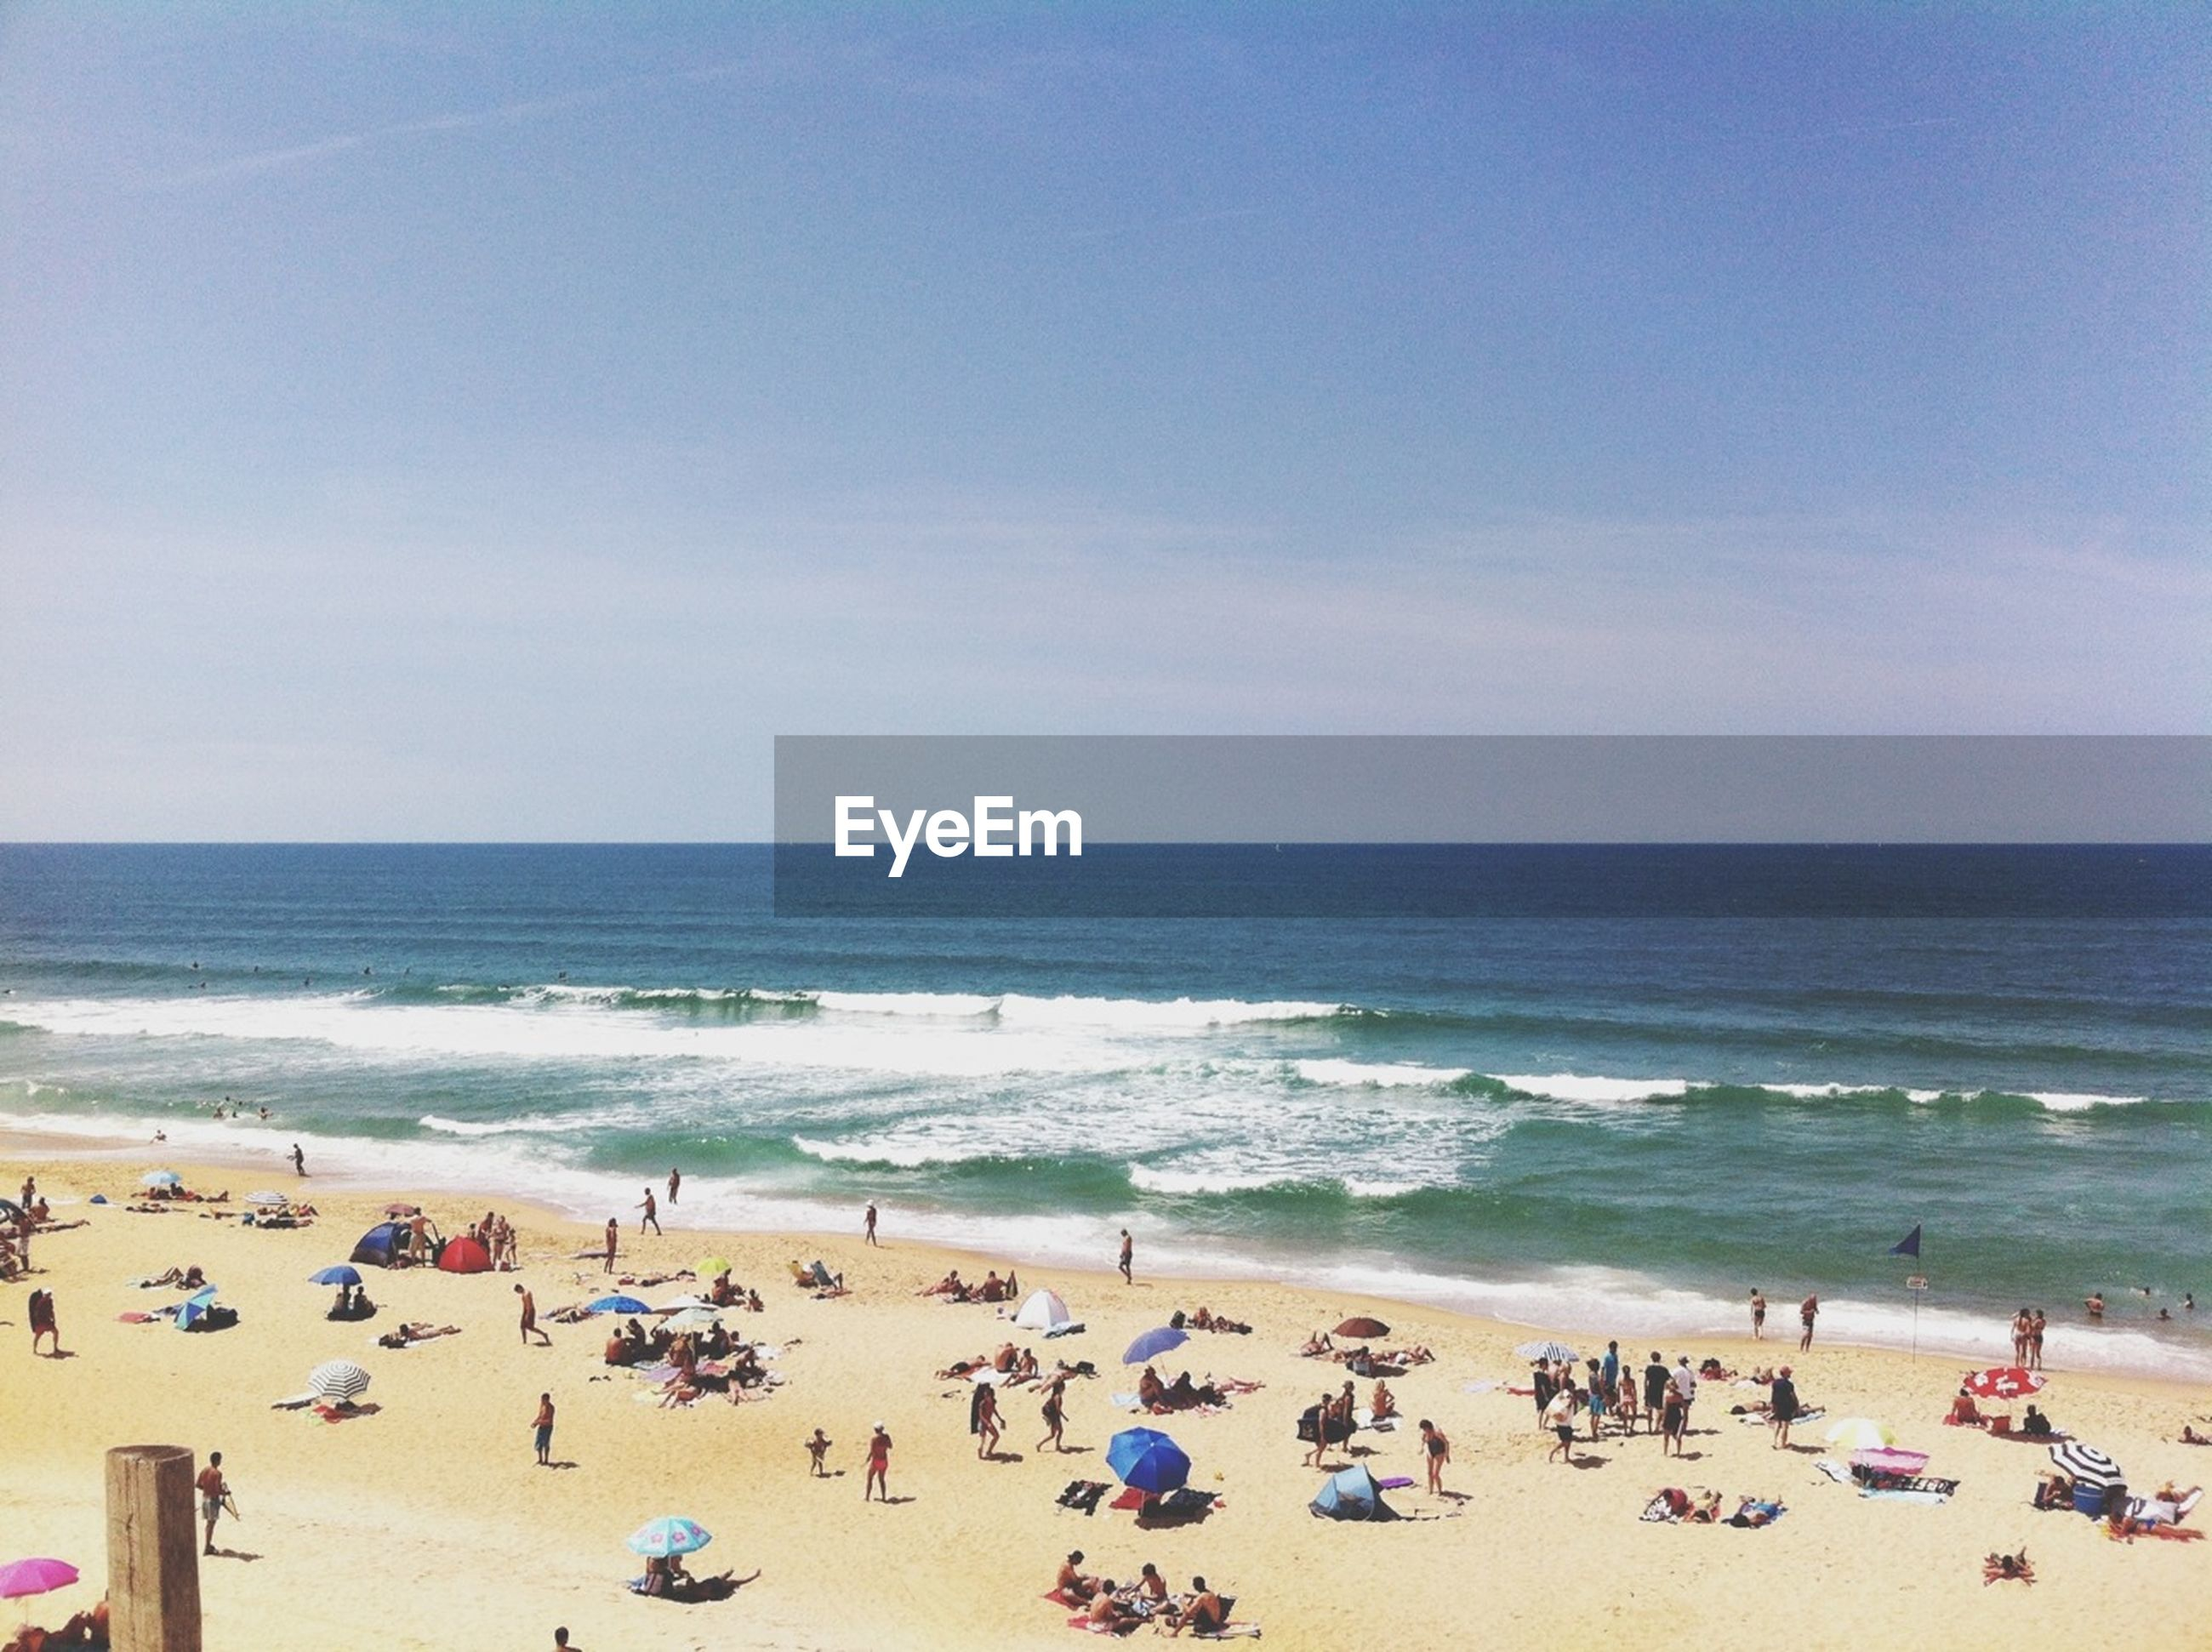 beach, sea, large group of people, horizon over water, shore, water, sand, vacations, leisure activity, lifestyles, mixed age range, enjoyment, person, sky, summer, scenics, men, tourist, enjoying